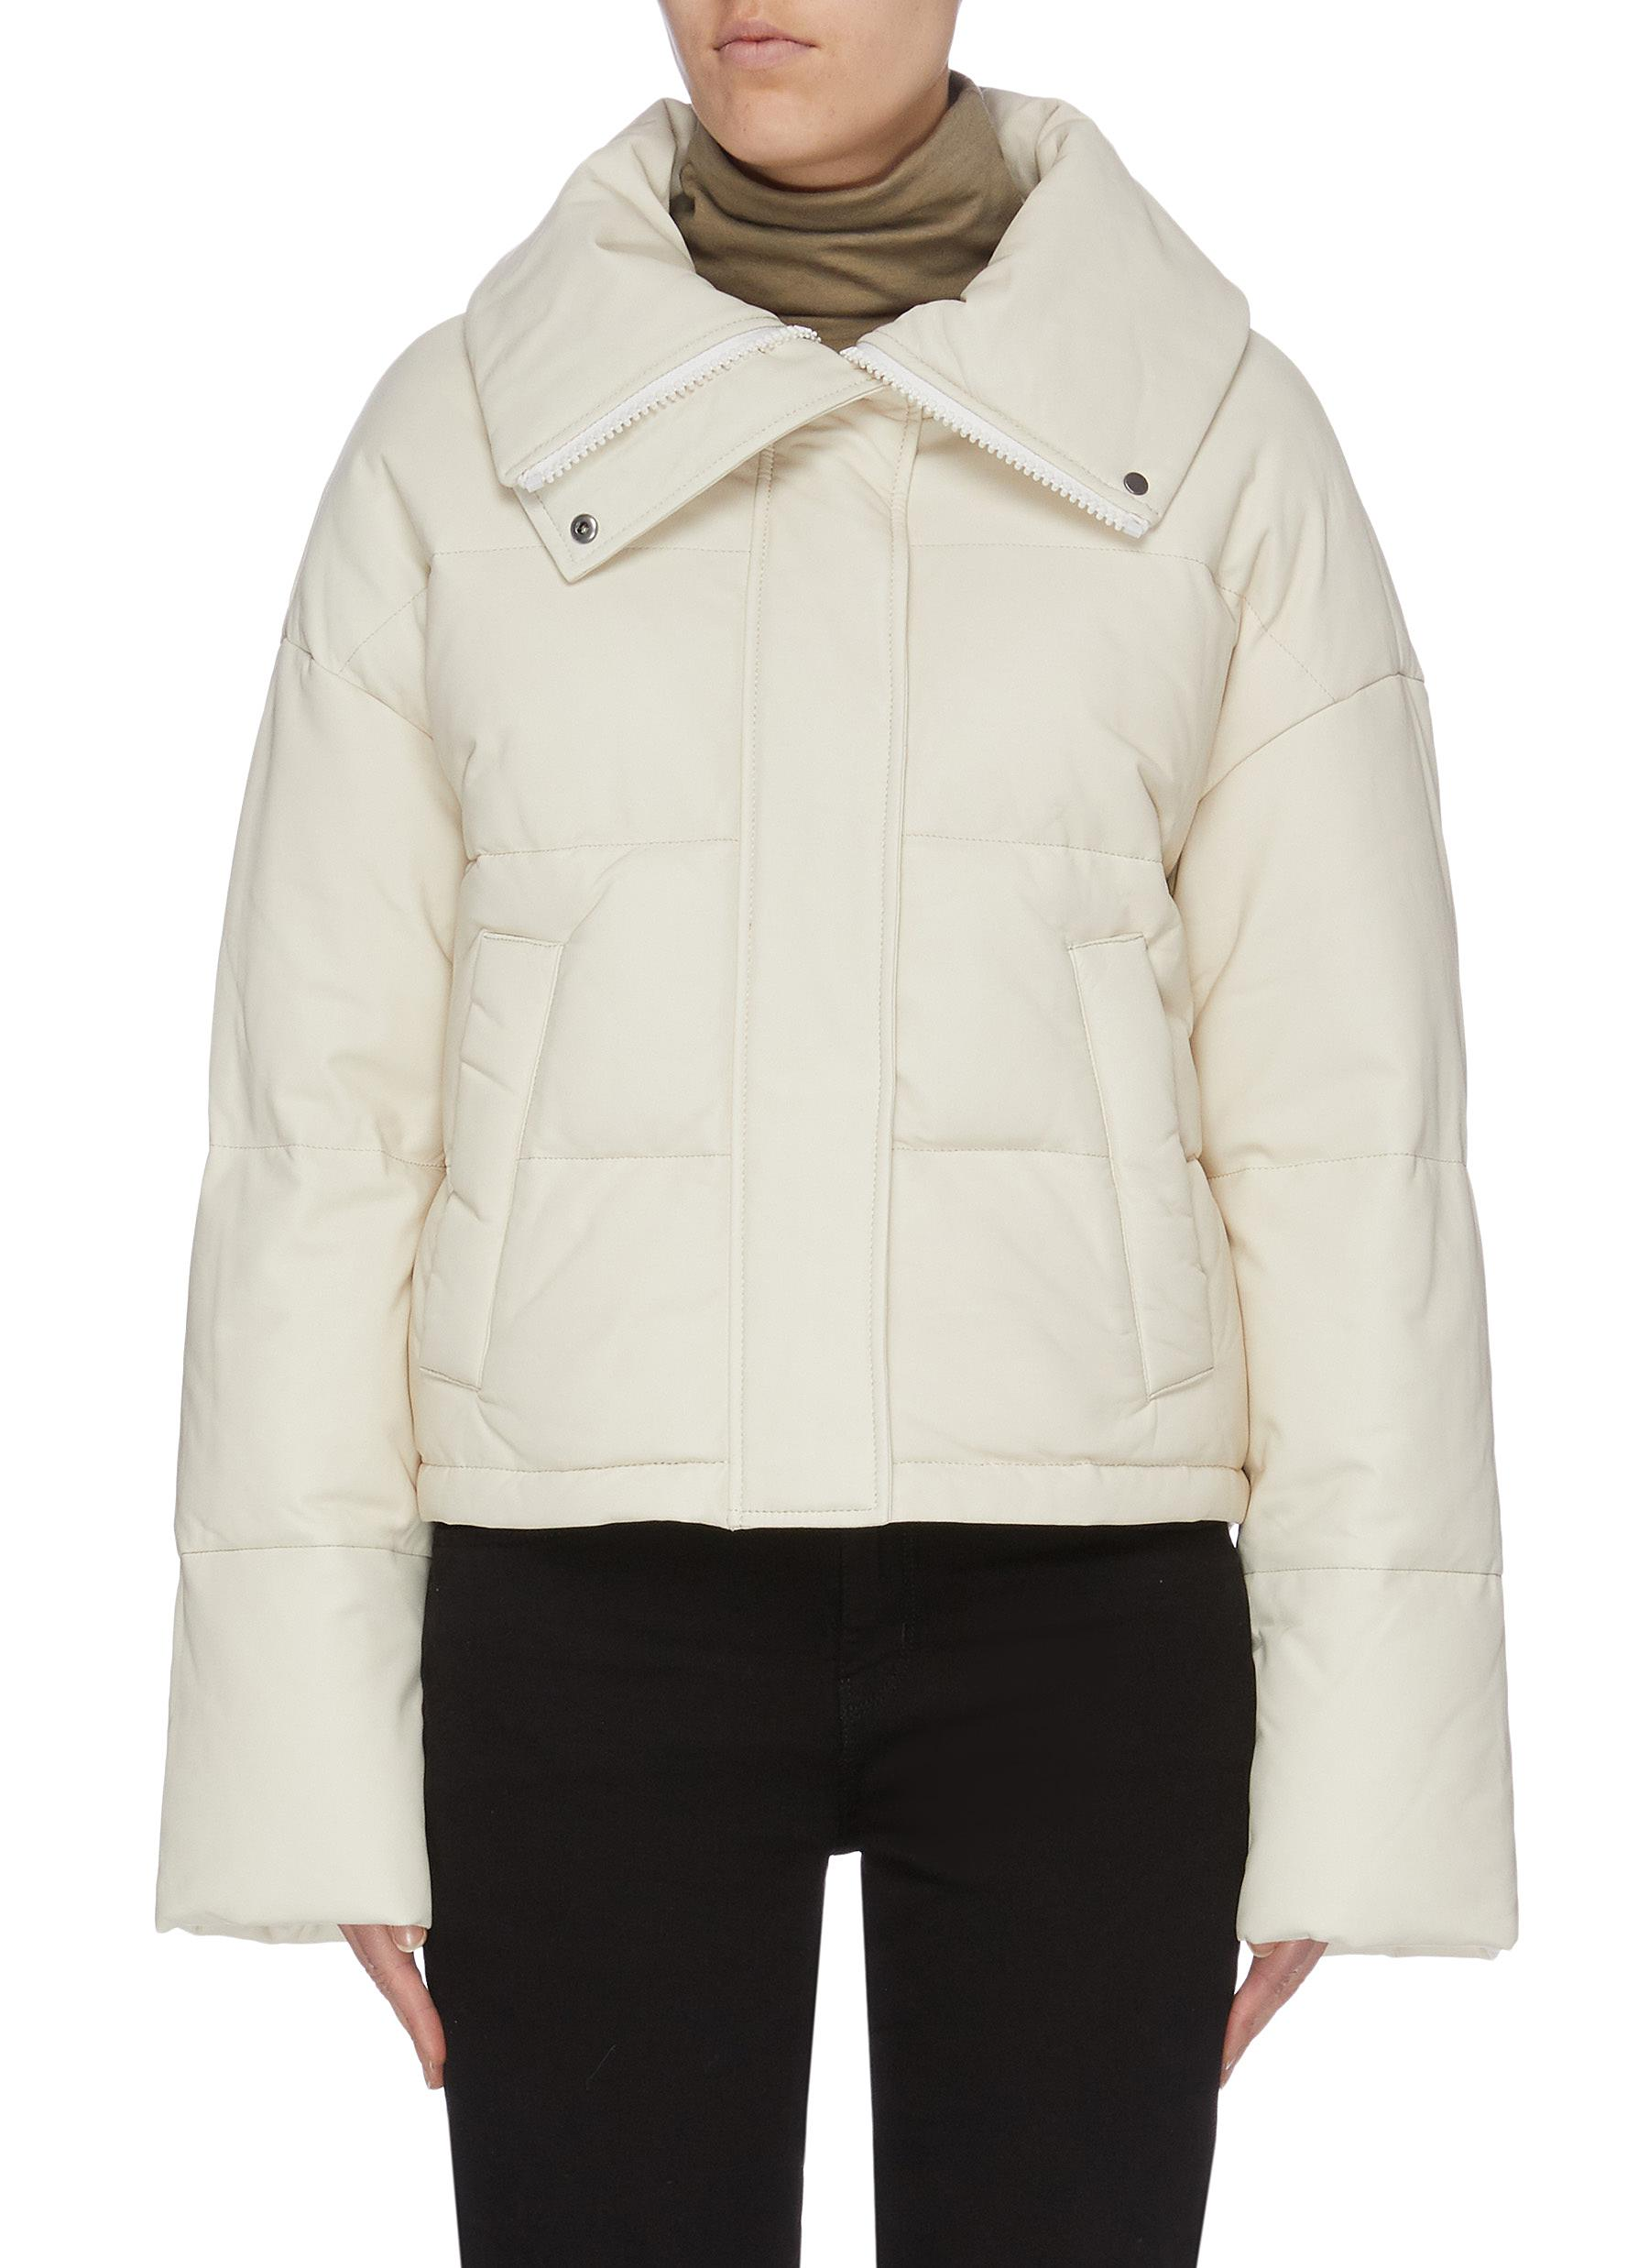 Lambskin leather nylon puffer jacket by Army By Yves Salomon